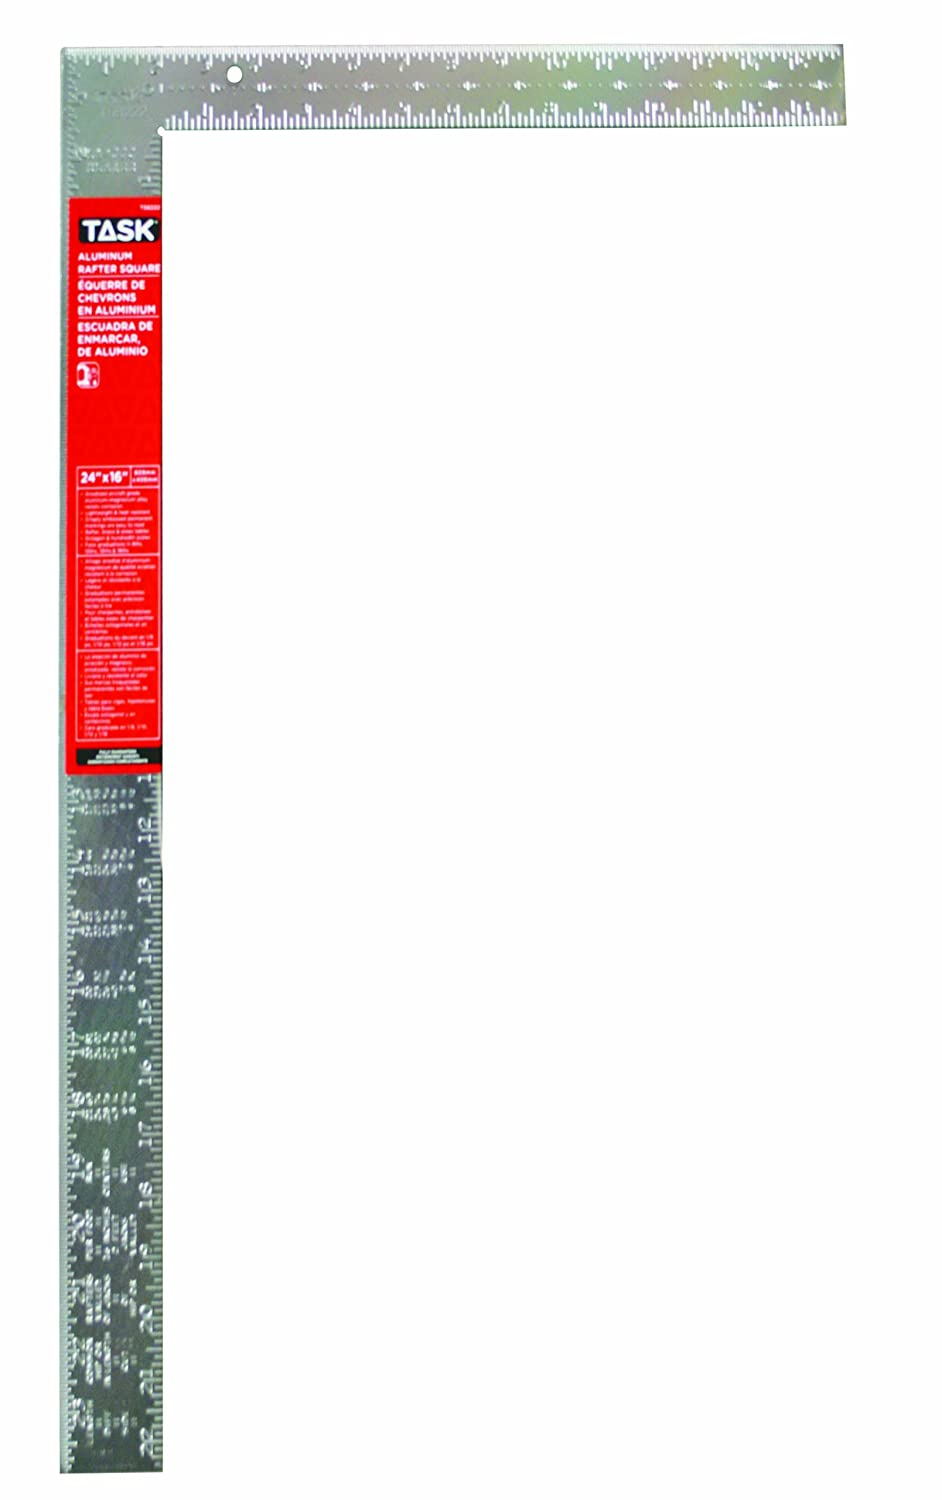 Task Tools T58222 24 Inch Aluminum Utility Square Embossed Markings